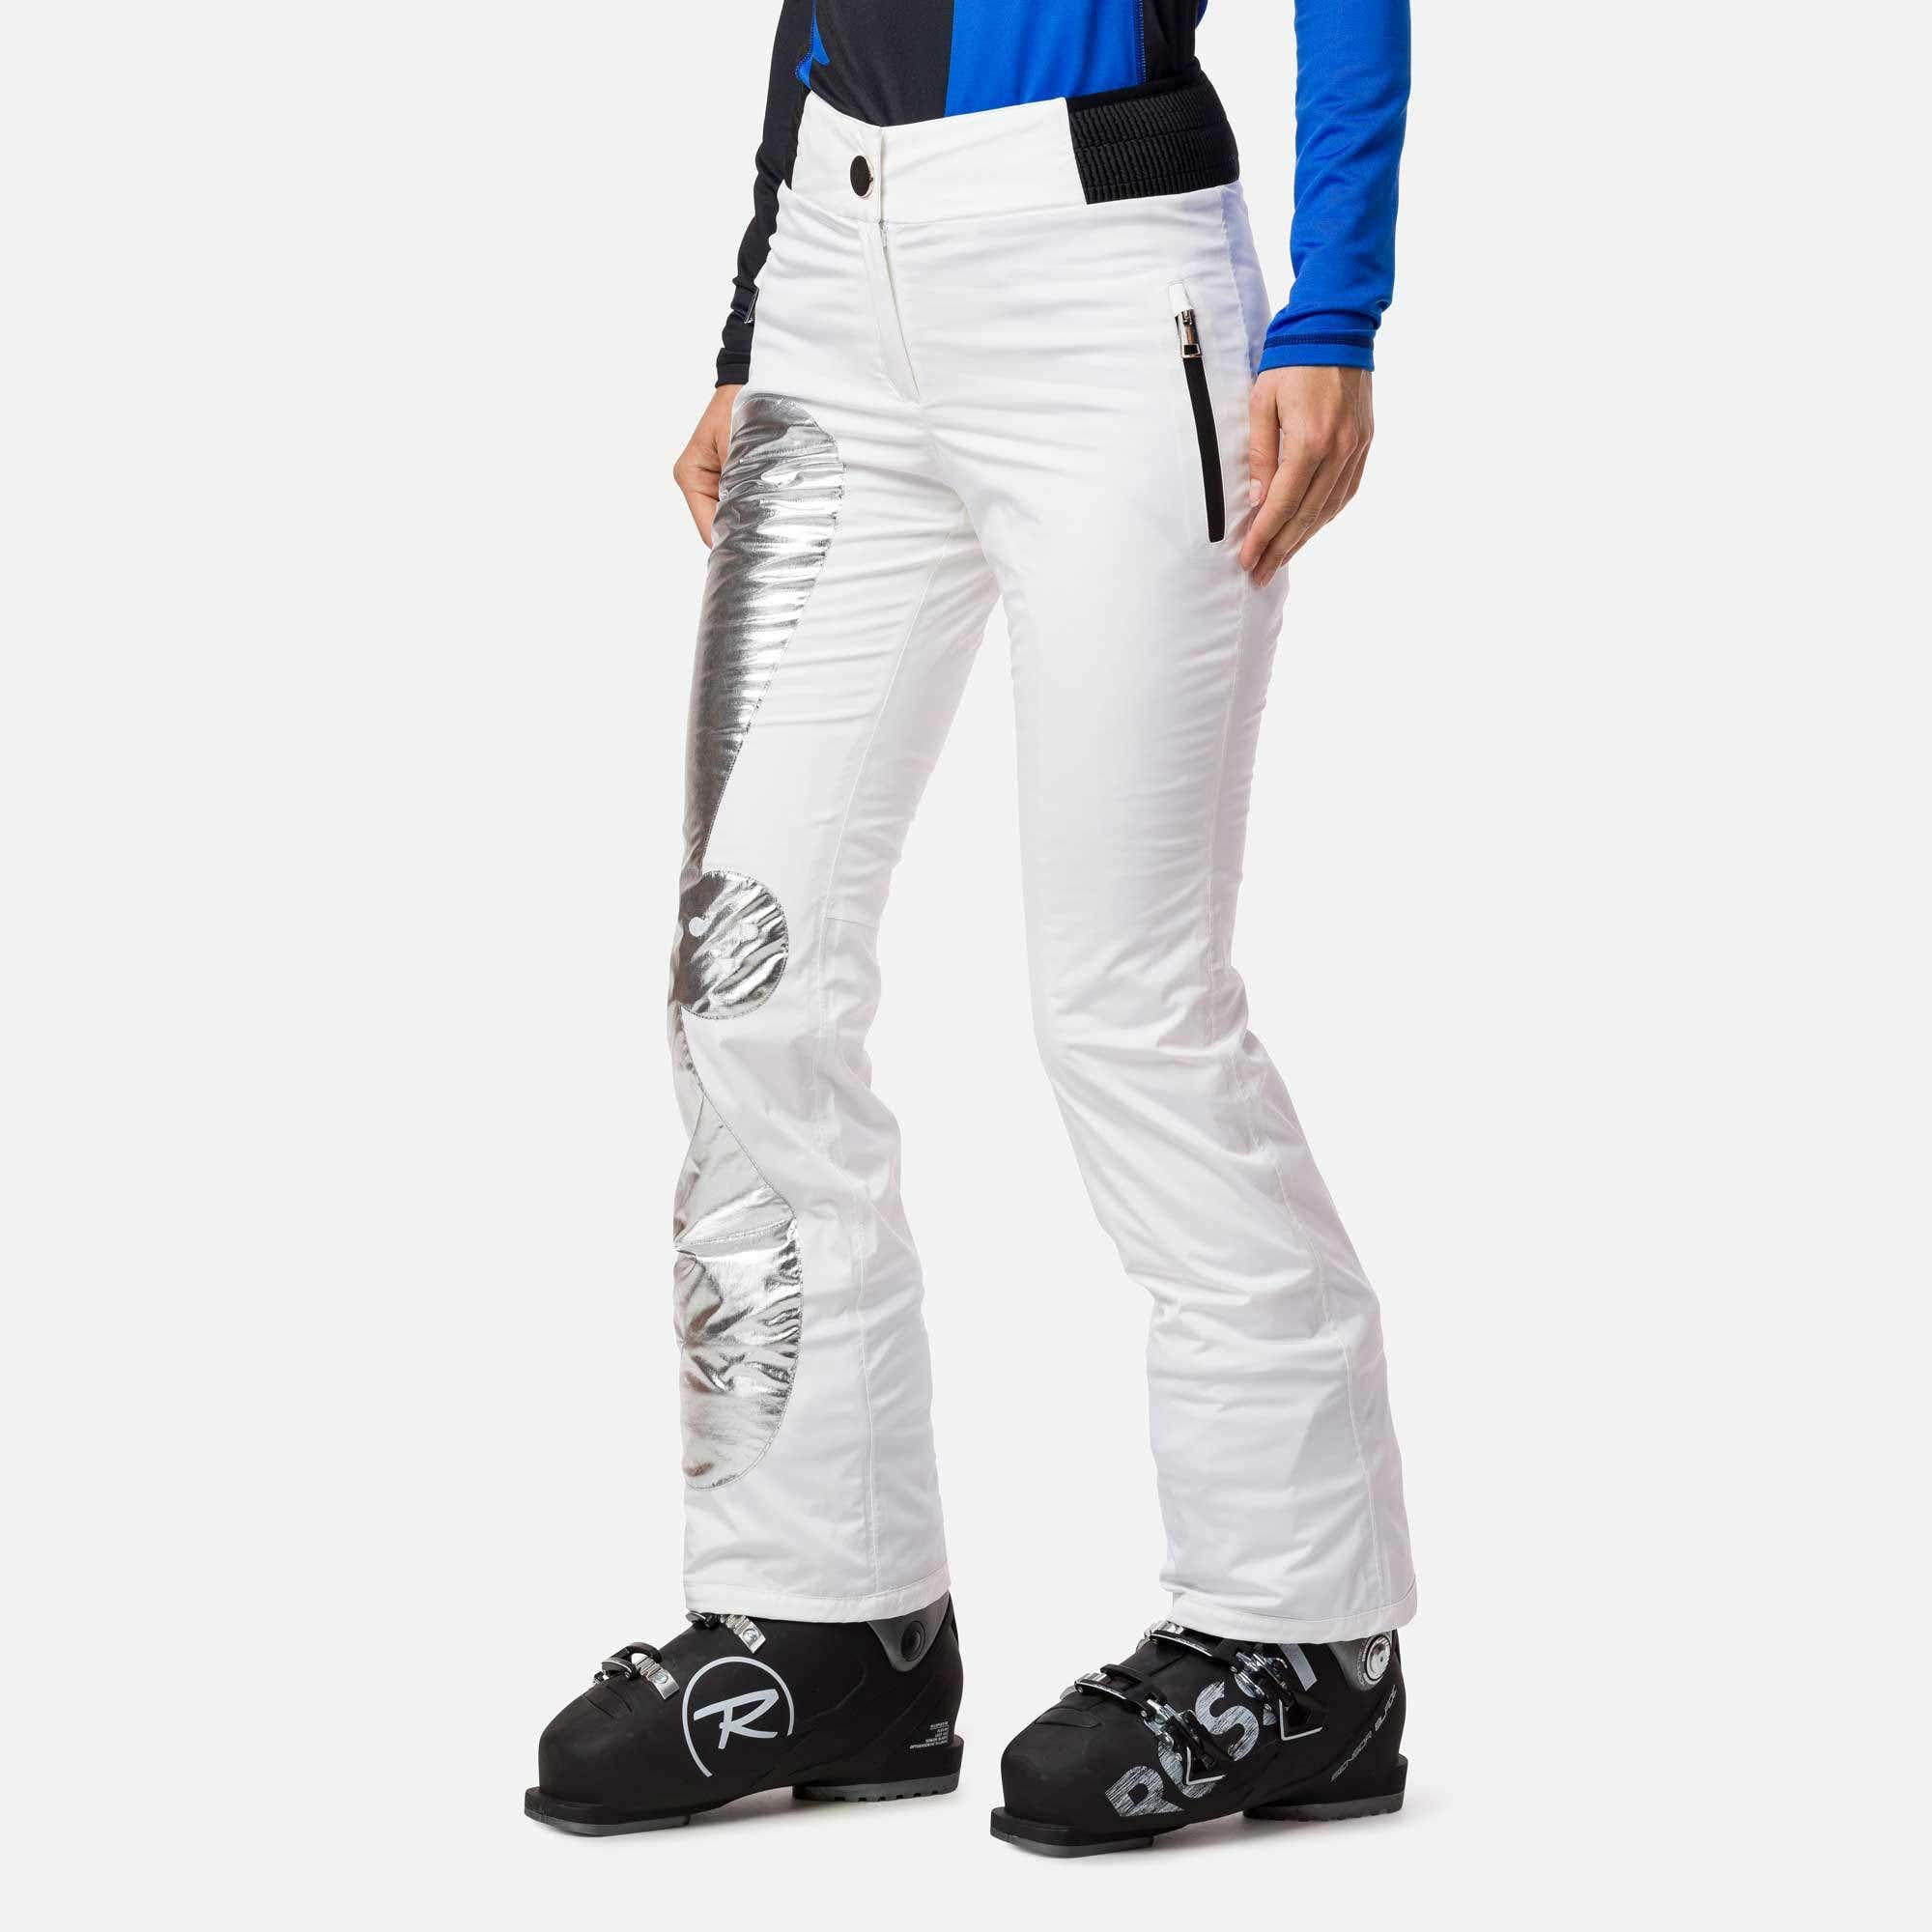 Image of JCC Women's Nutti Ski Pants